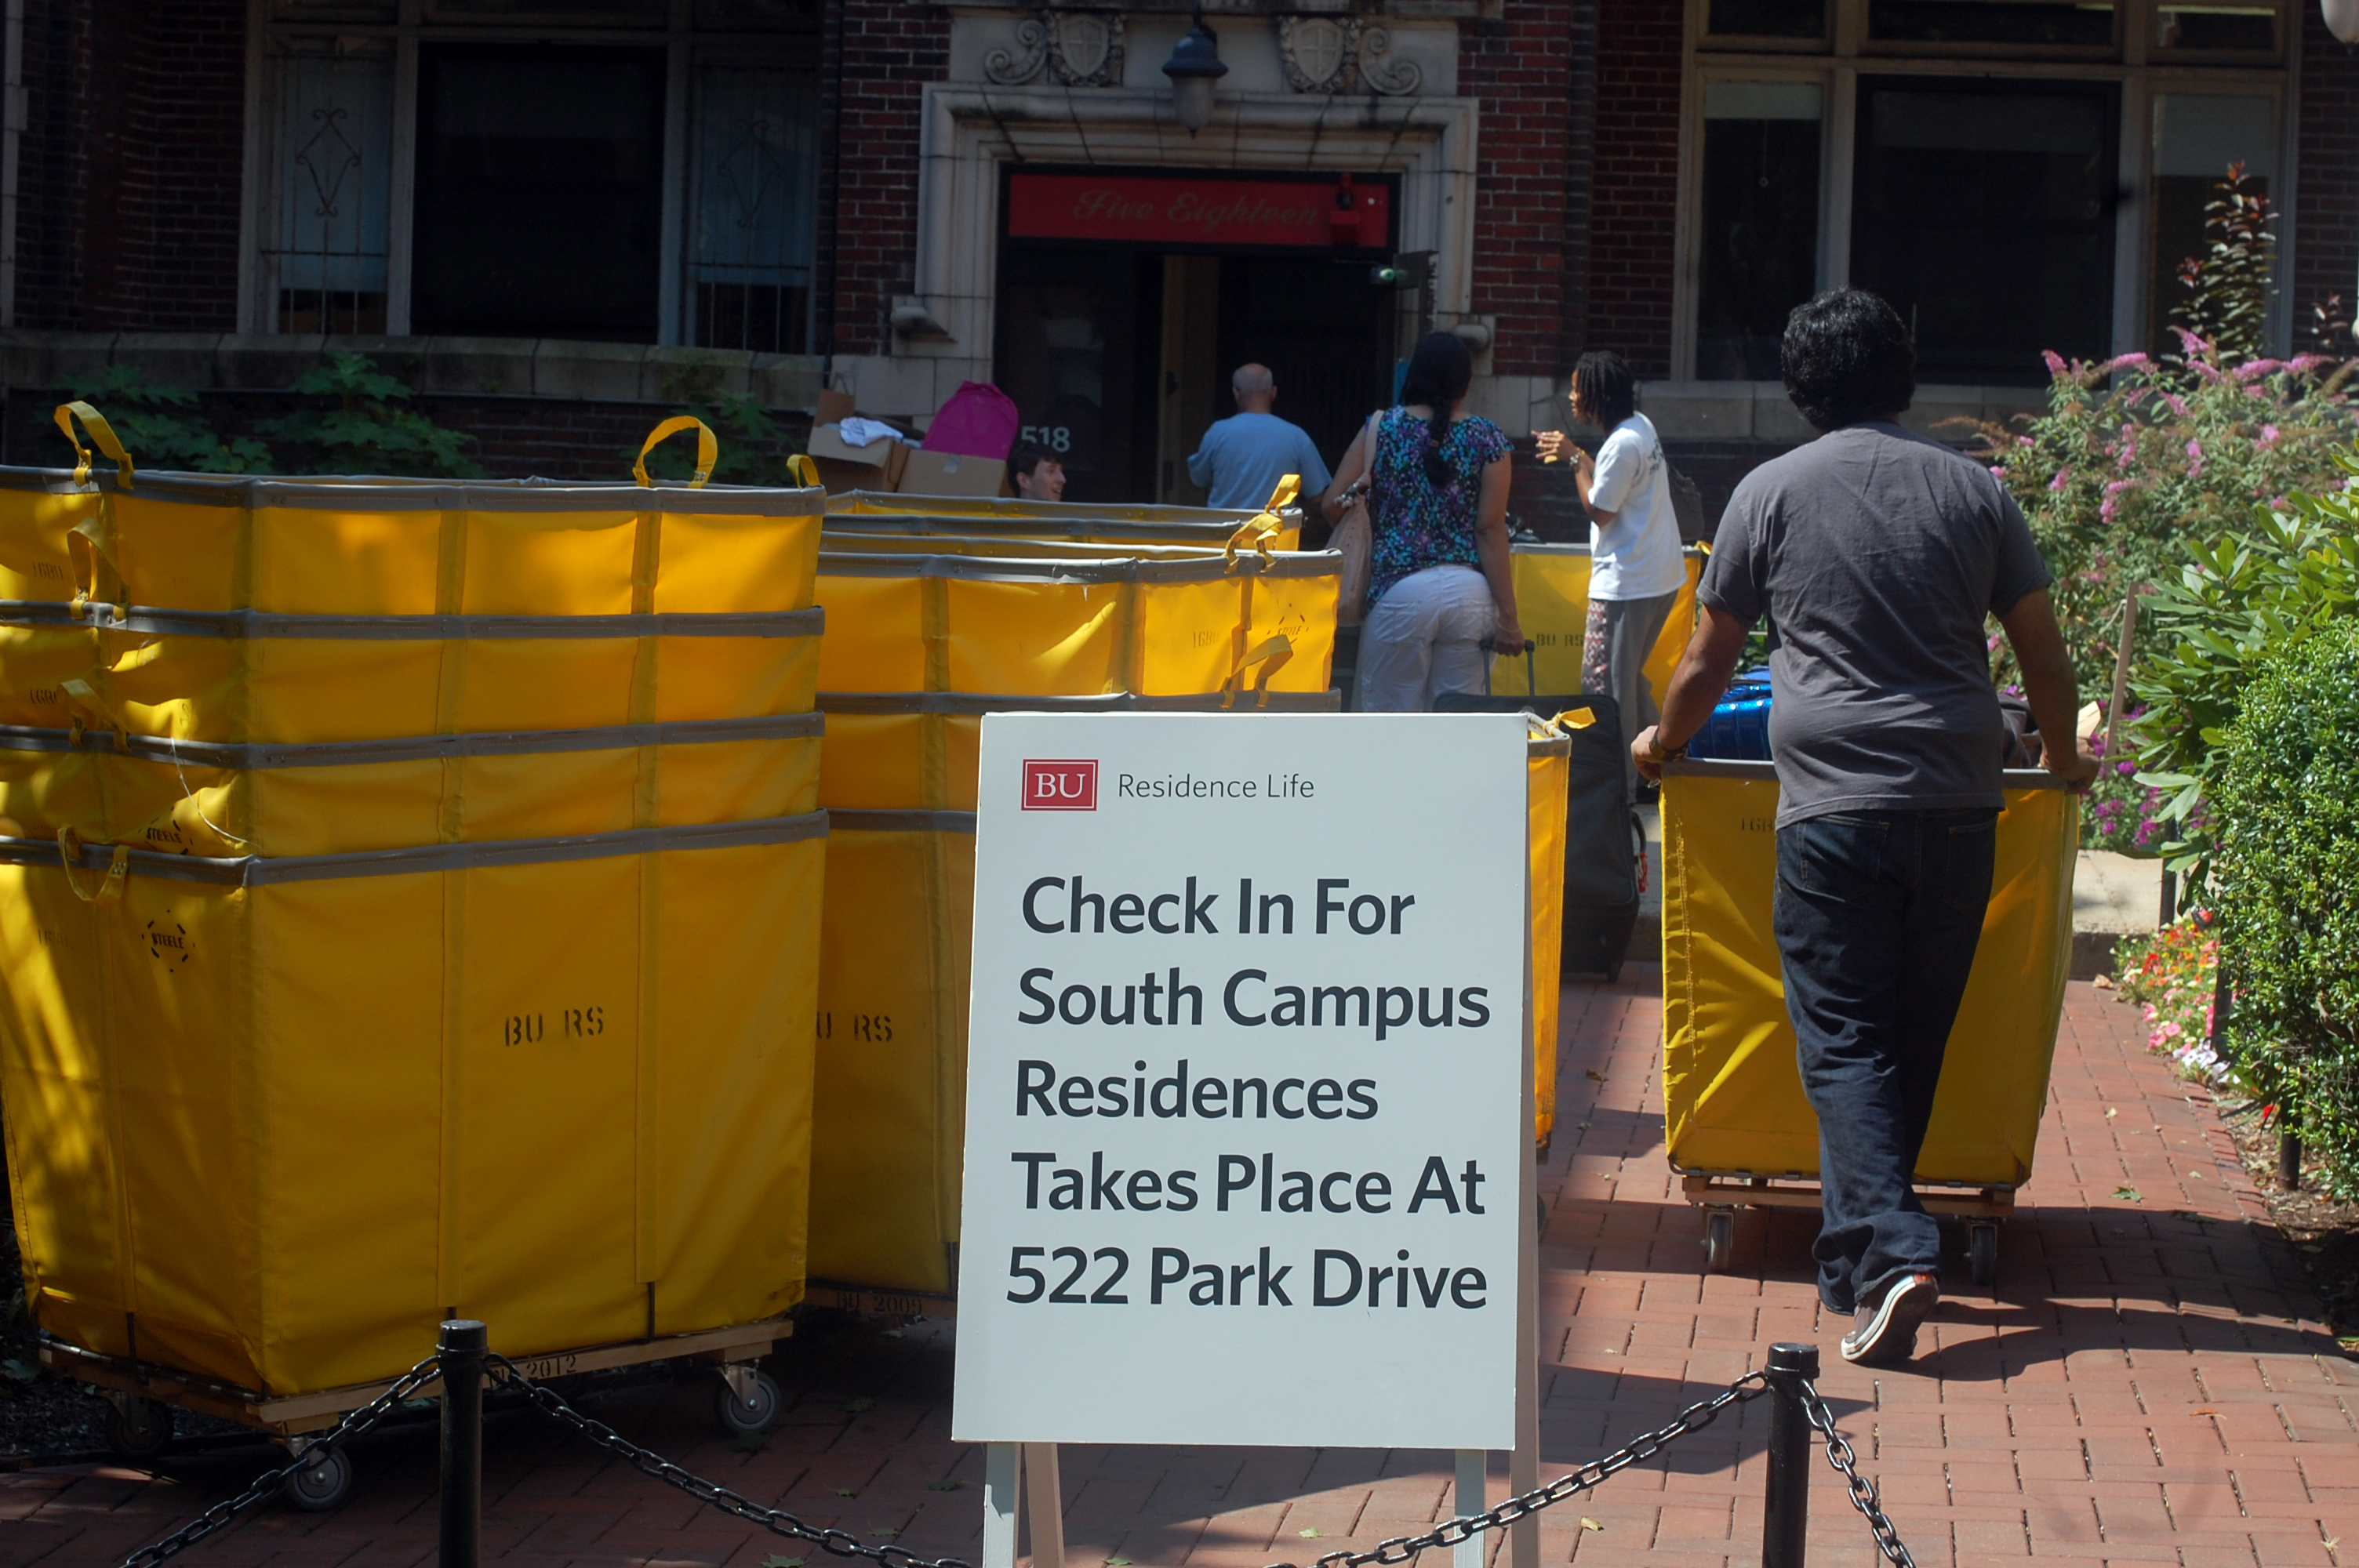 This wasn't an uncommon level of activity in South Campus, as most students who received free housing stayed in South this summer